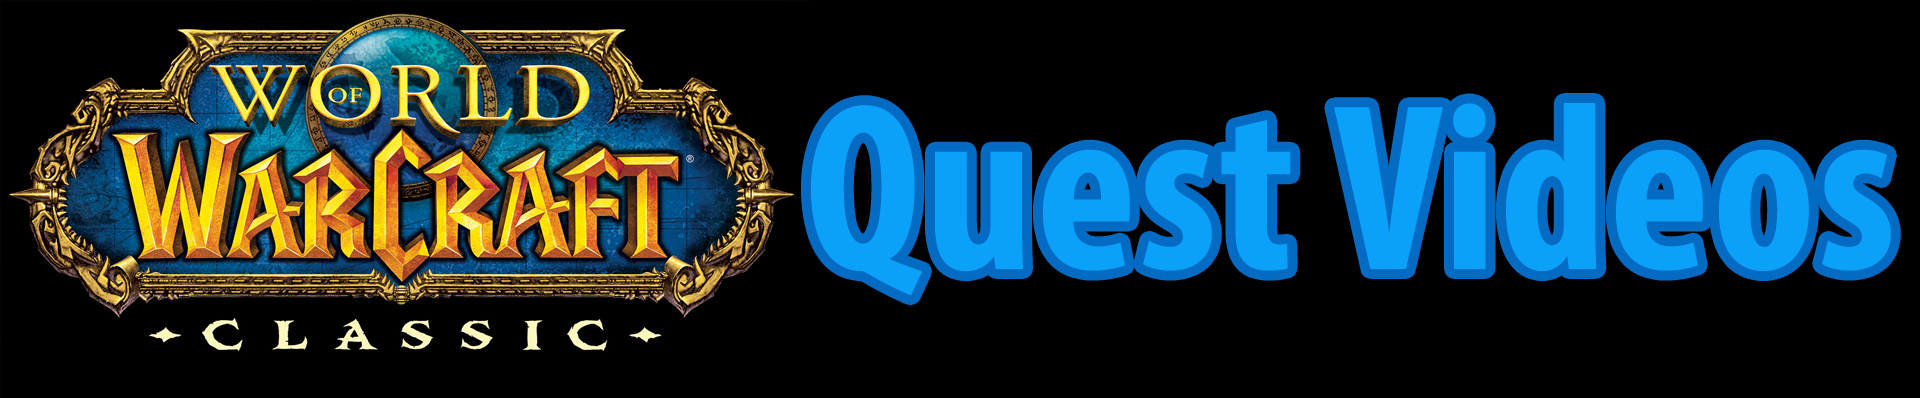 World of Warcraft Classic Quest Videos